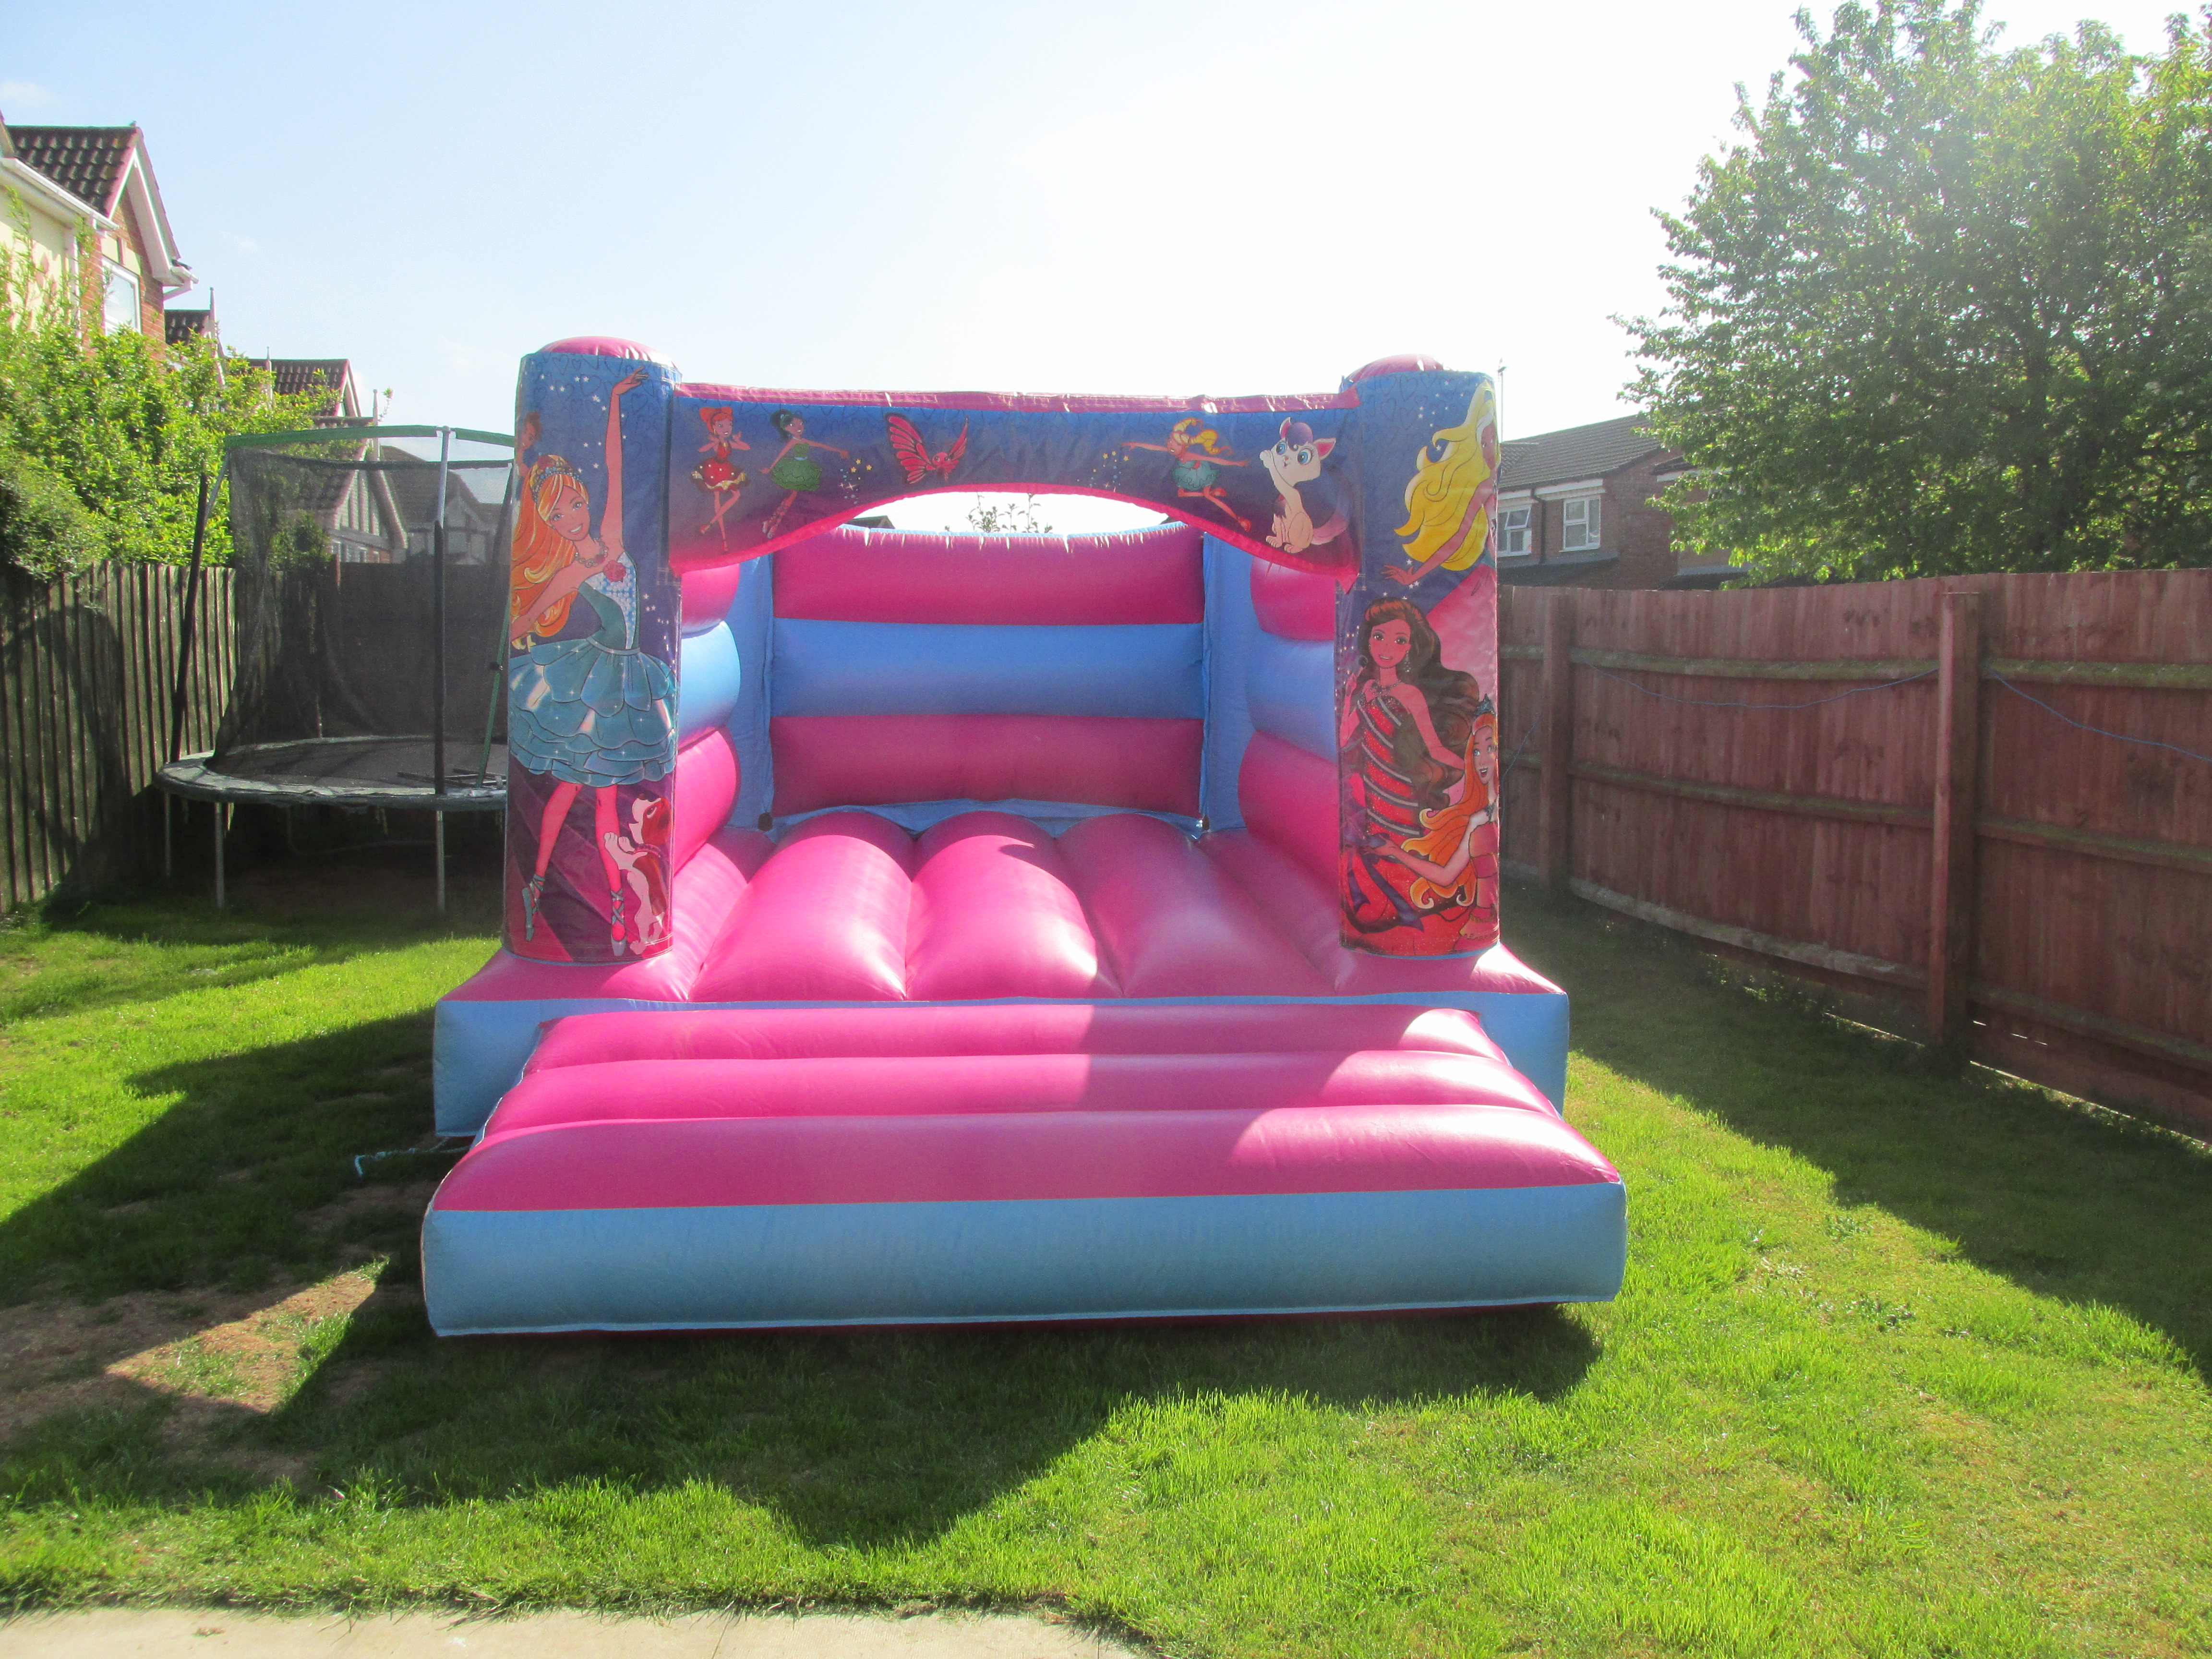 Pretty Pink Barbie Themed Bouncy Castle Hire In Peterborough, Bourne and Spalding